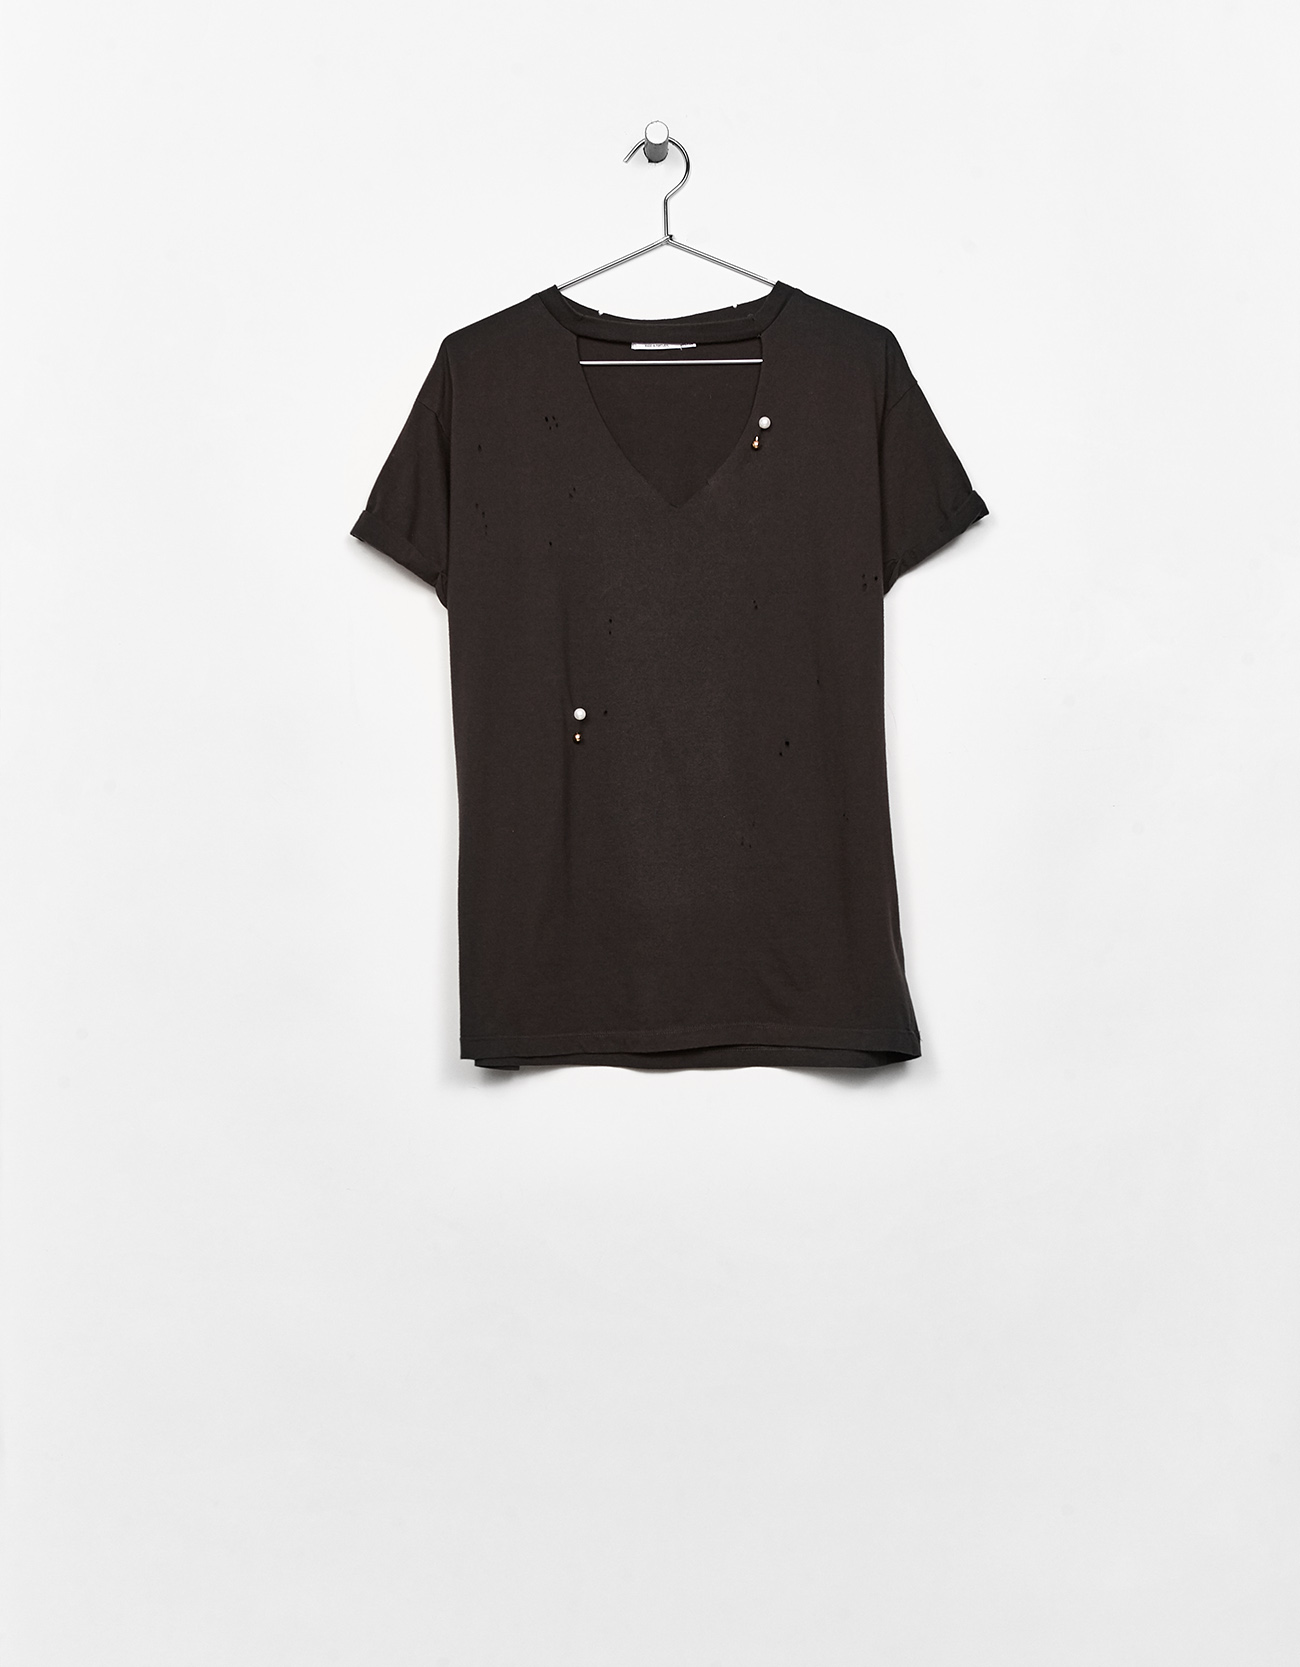 Black t shirt with white collar - Prevnext